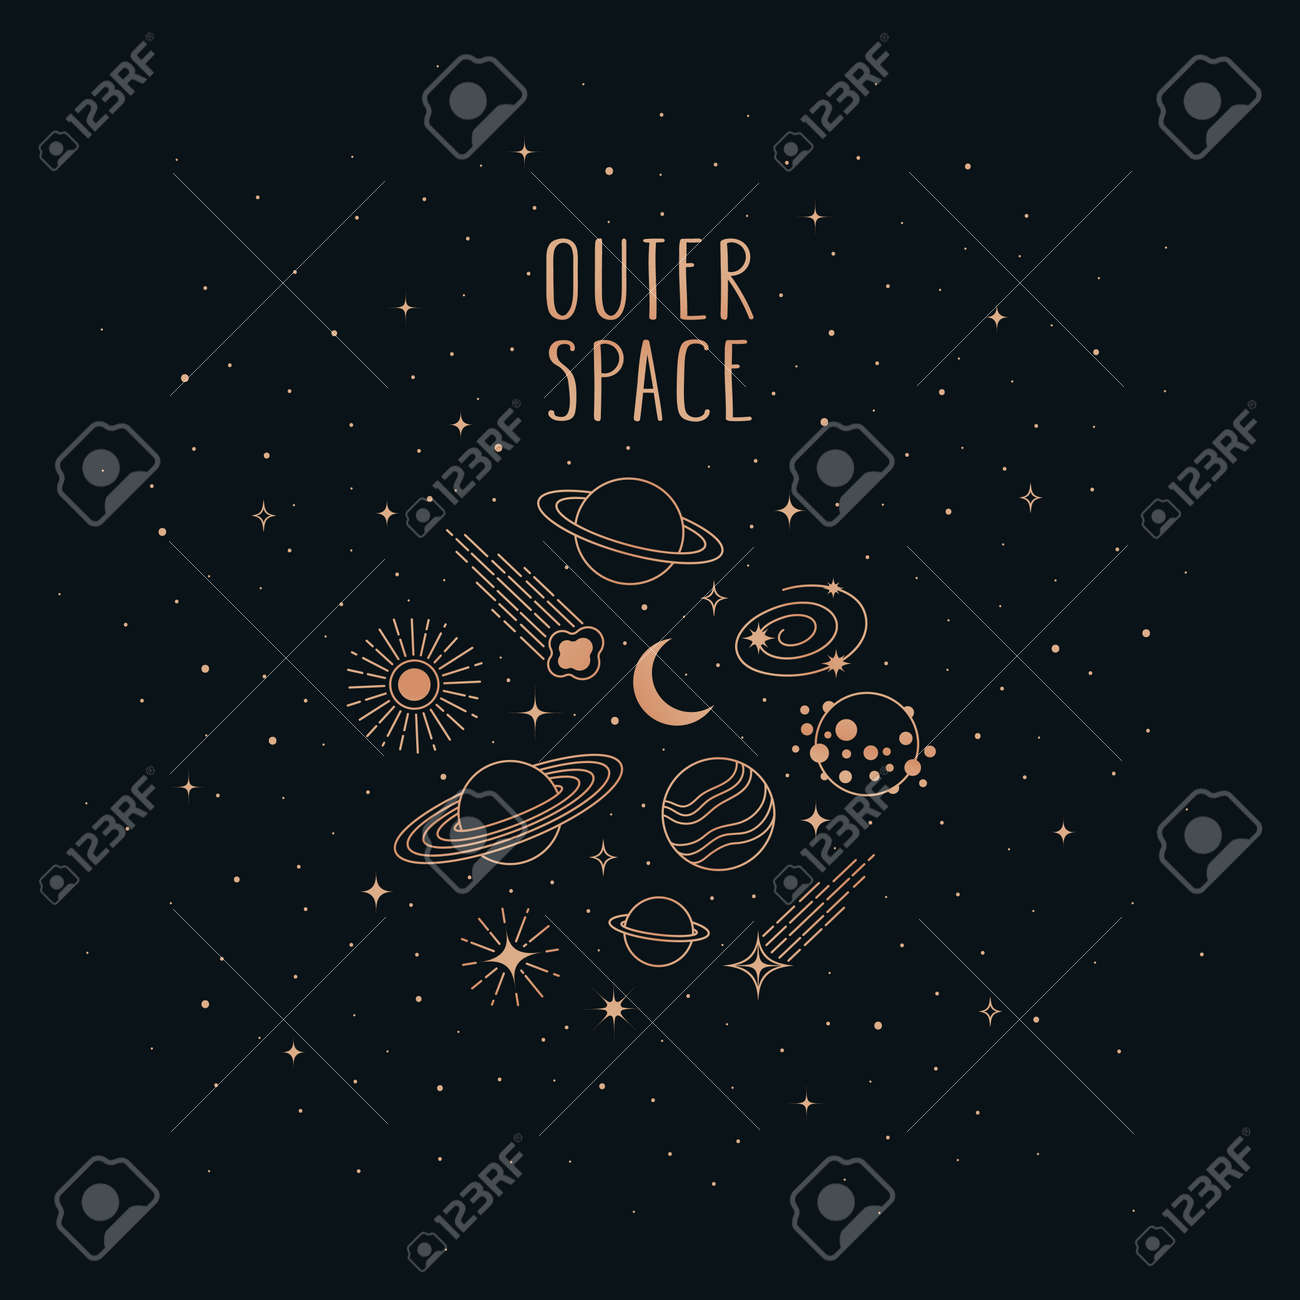 Hand drawn vector doodle of Space objects and symbols: planets, asteroids, galaxy, sun, moon and stars. Cartoon sketch background for t-shirt prints, posters, postcards and other designs. - 168597254